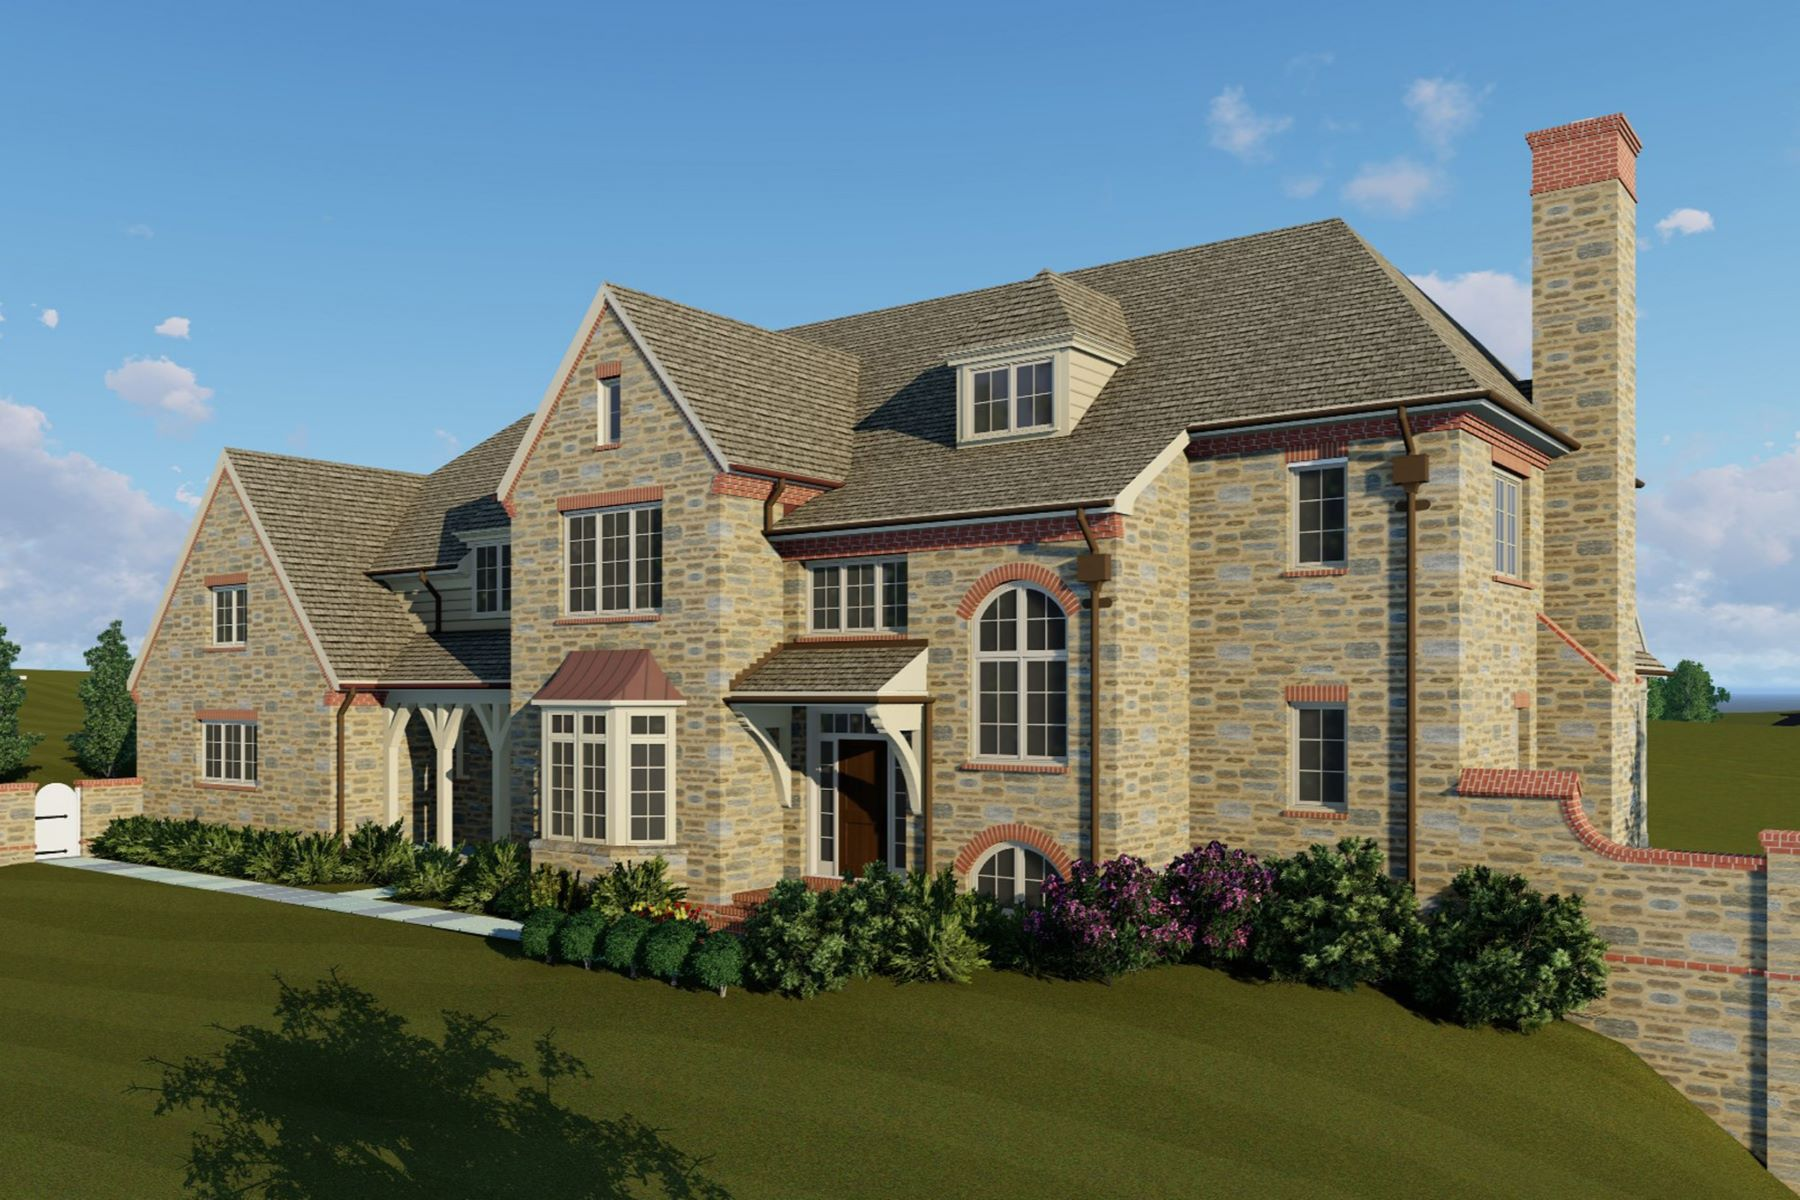 Single Family Home for Sale at New Construction 443 BARCLAY RD, Bryn Mawr, Pennsylvania 19010 United States